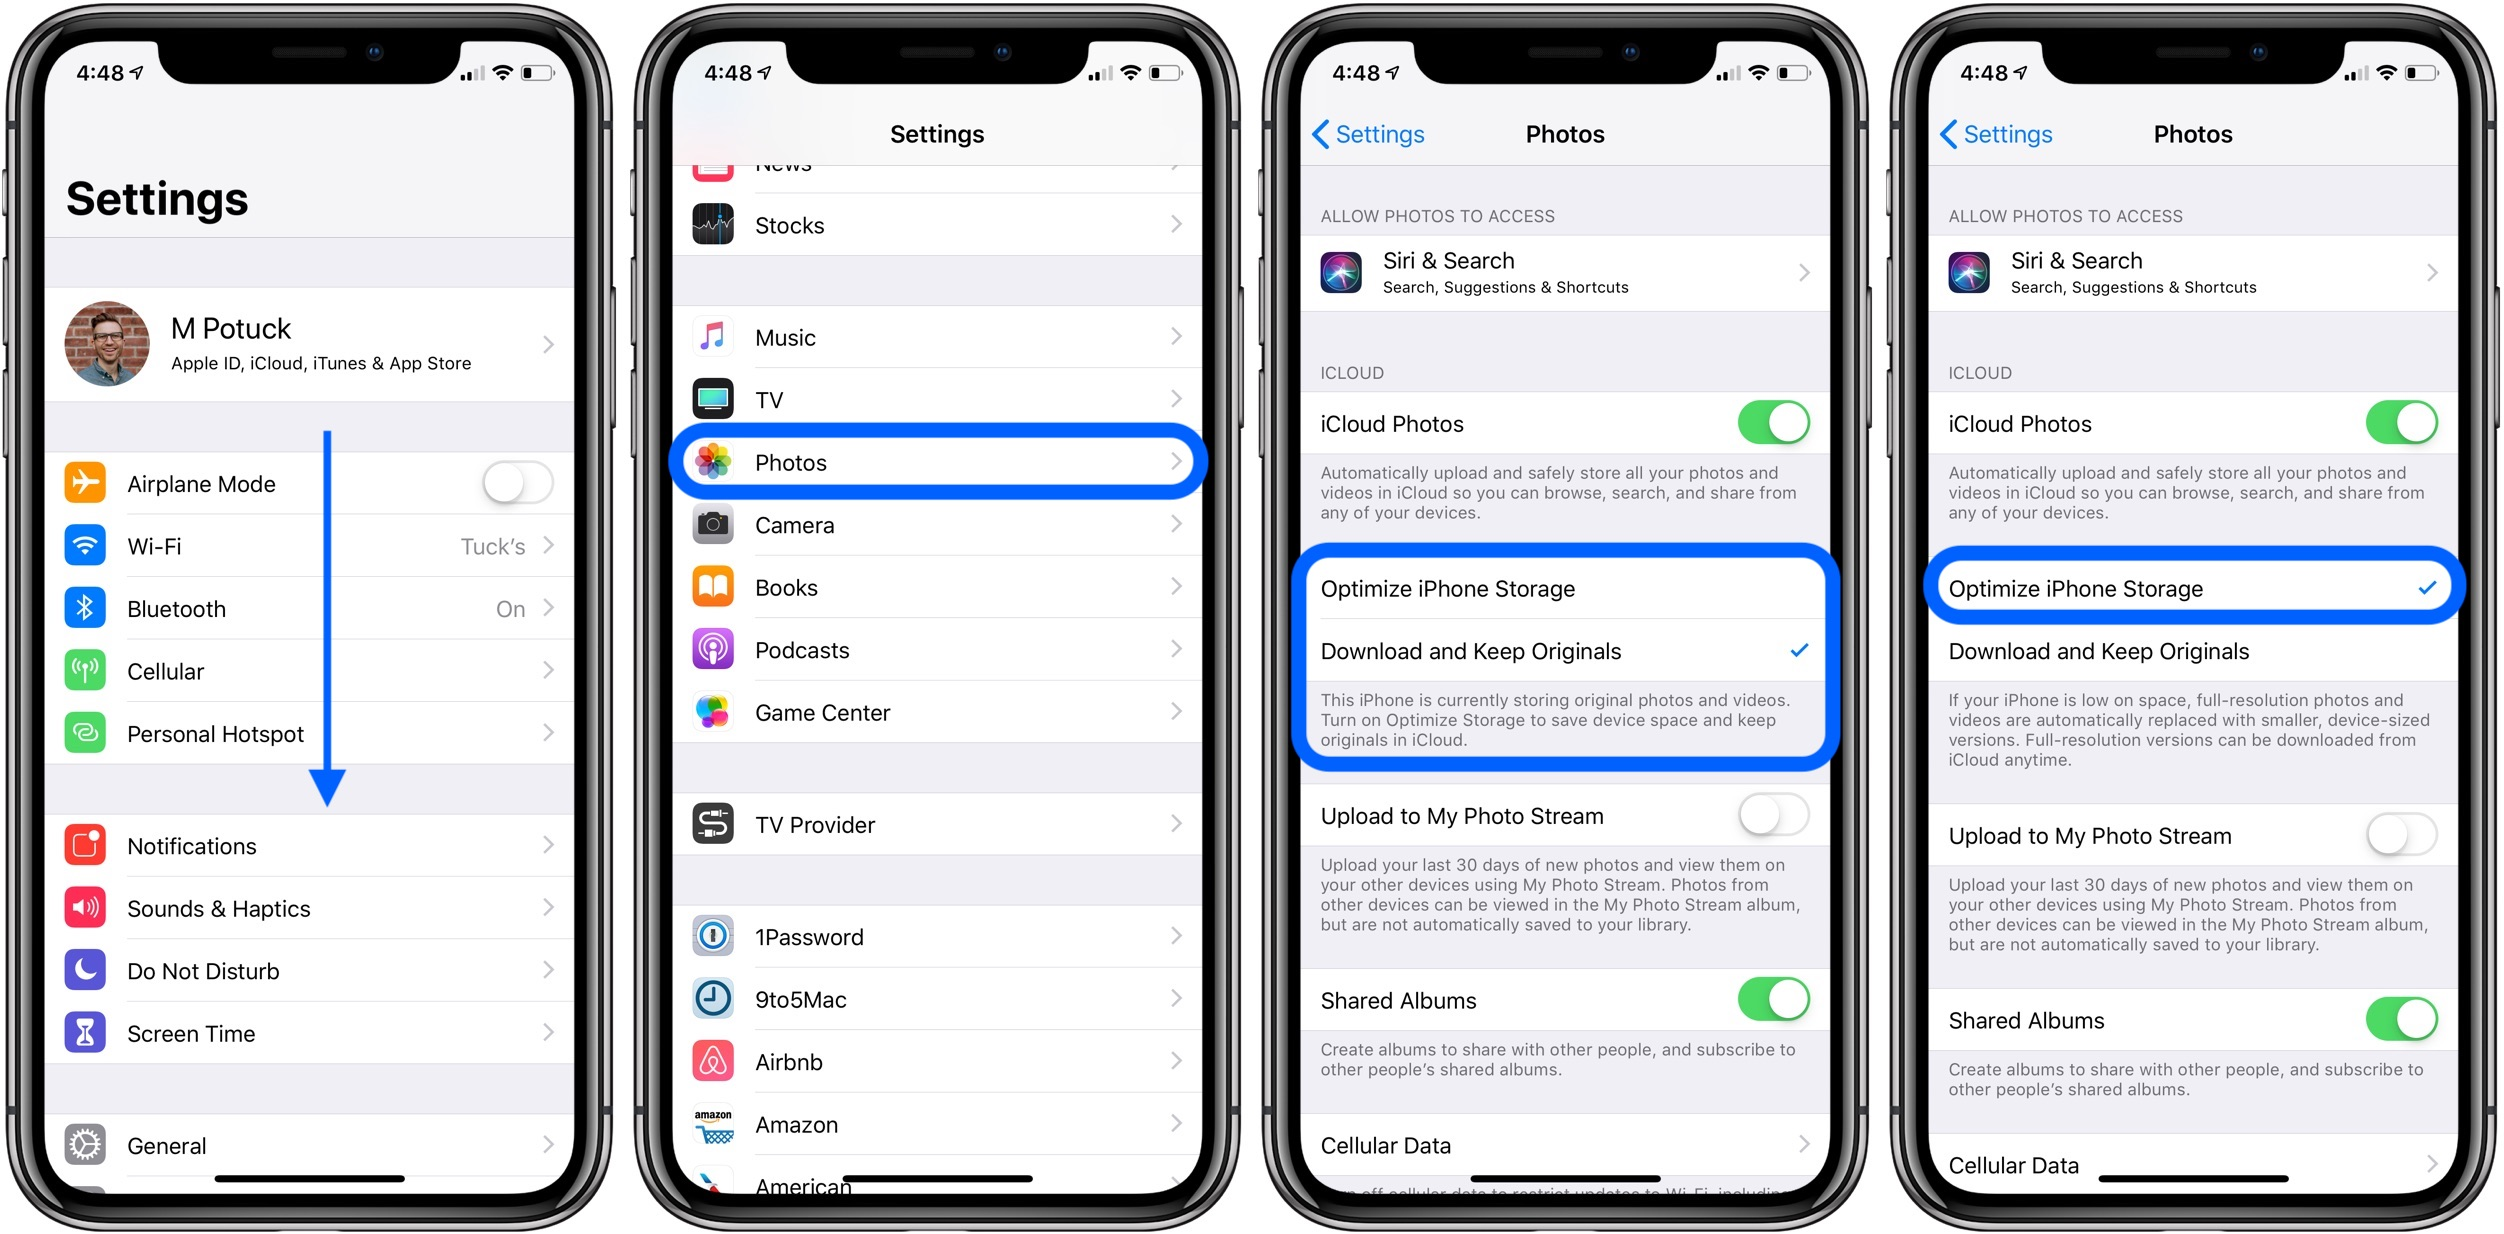 Iphone Ipad How To Free Up Space With Icloud Photos Optimized